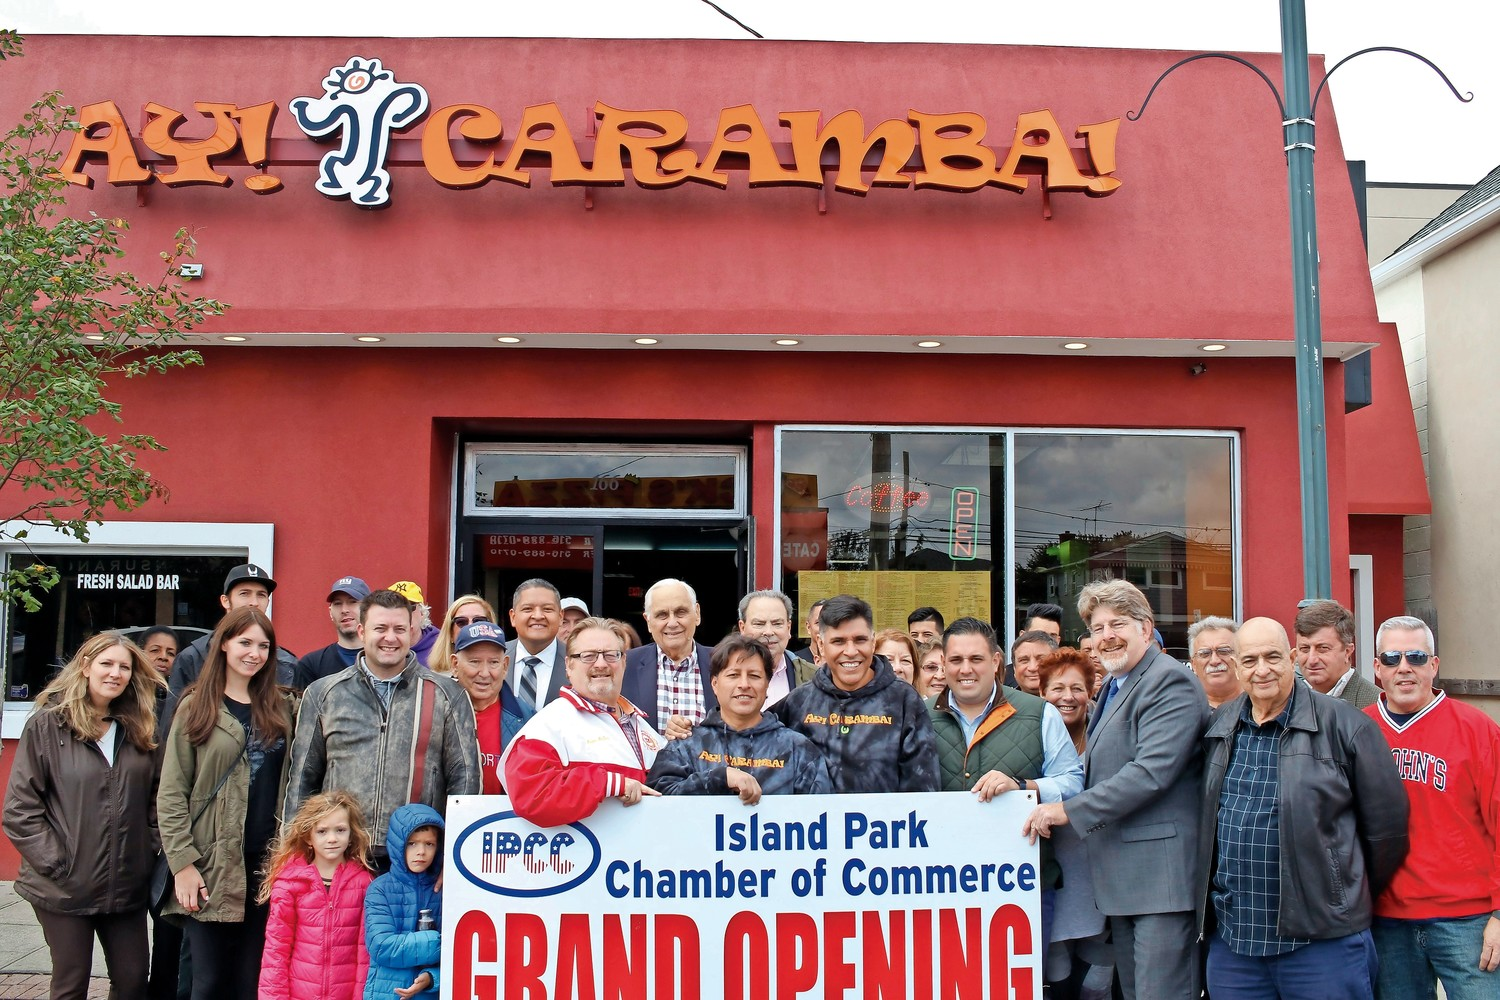 Members of the Island Park Chamber of Commerce, residents and elected officials attended a ribbon cutting for the Ay Carumba restaurant, at 166 Long Beach Road,  on Saturday. The business moved to Island Park from Long Beach last month.